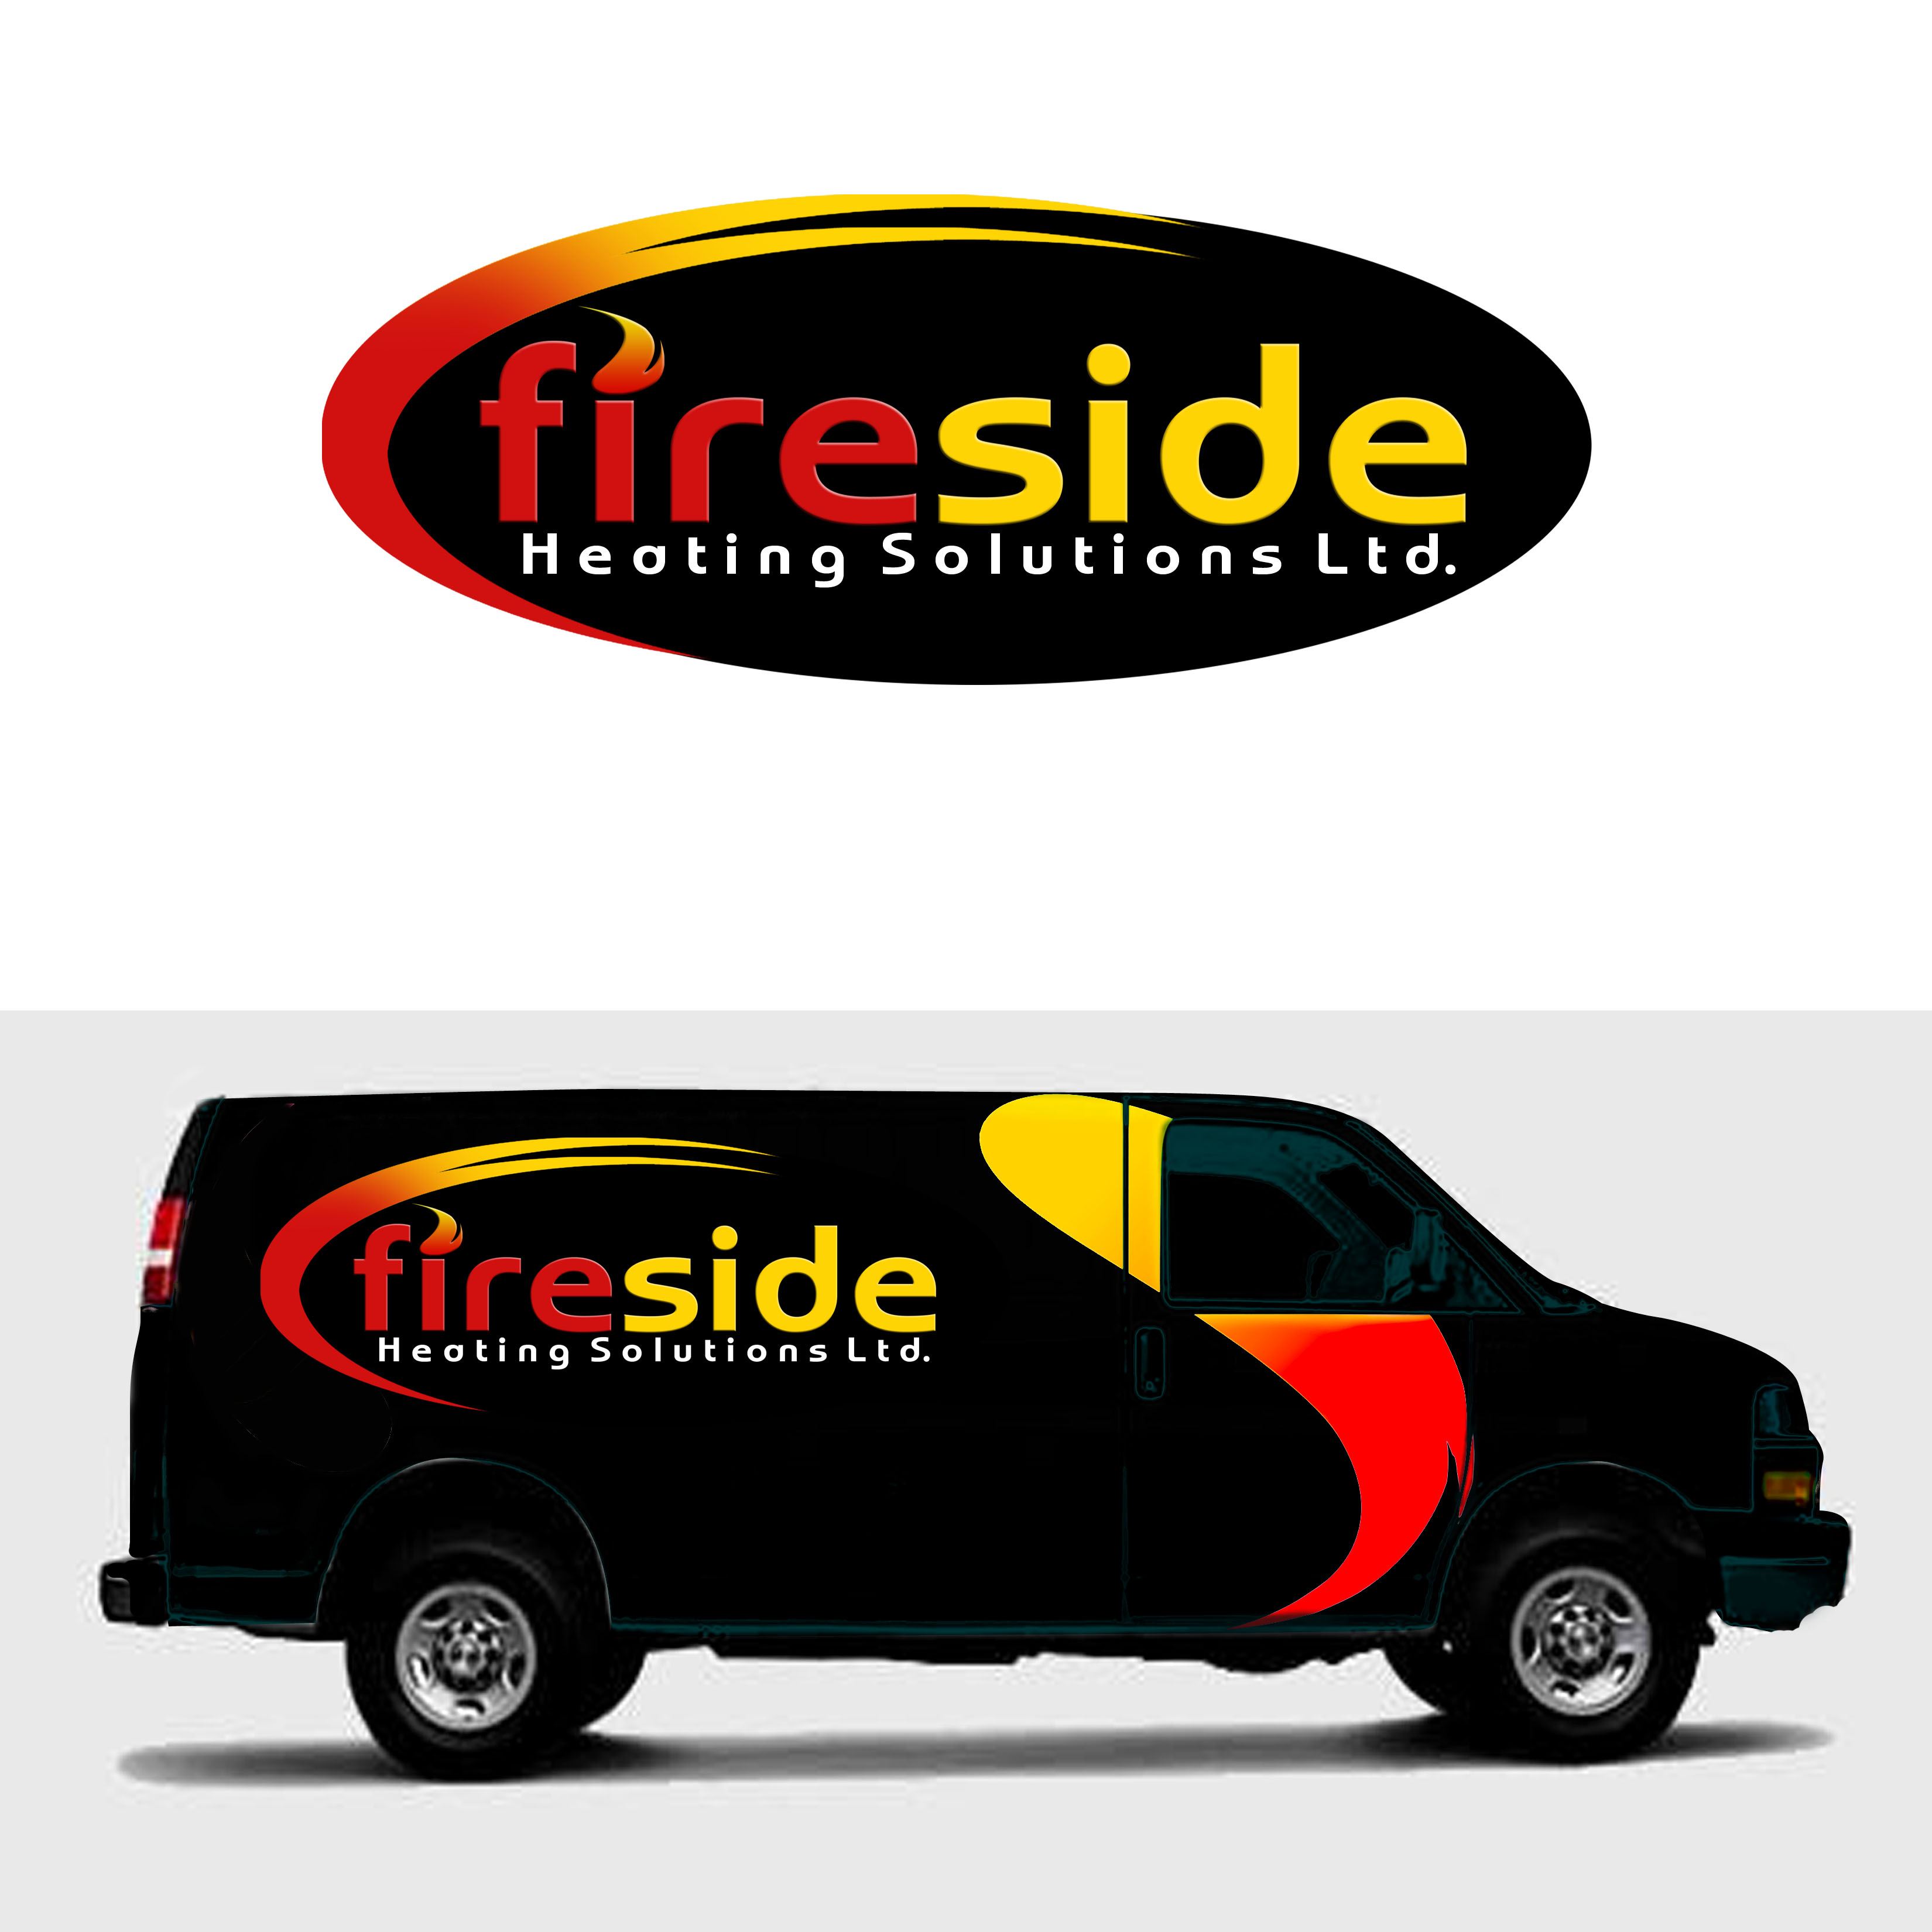 Logo Design by Allan Esclamado - Entry No. 180 in the Logo Design Contest Creative Logo Design for Fireside Heating Solutions Ltd..